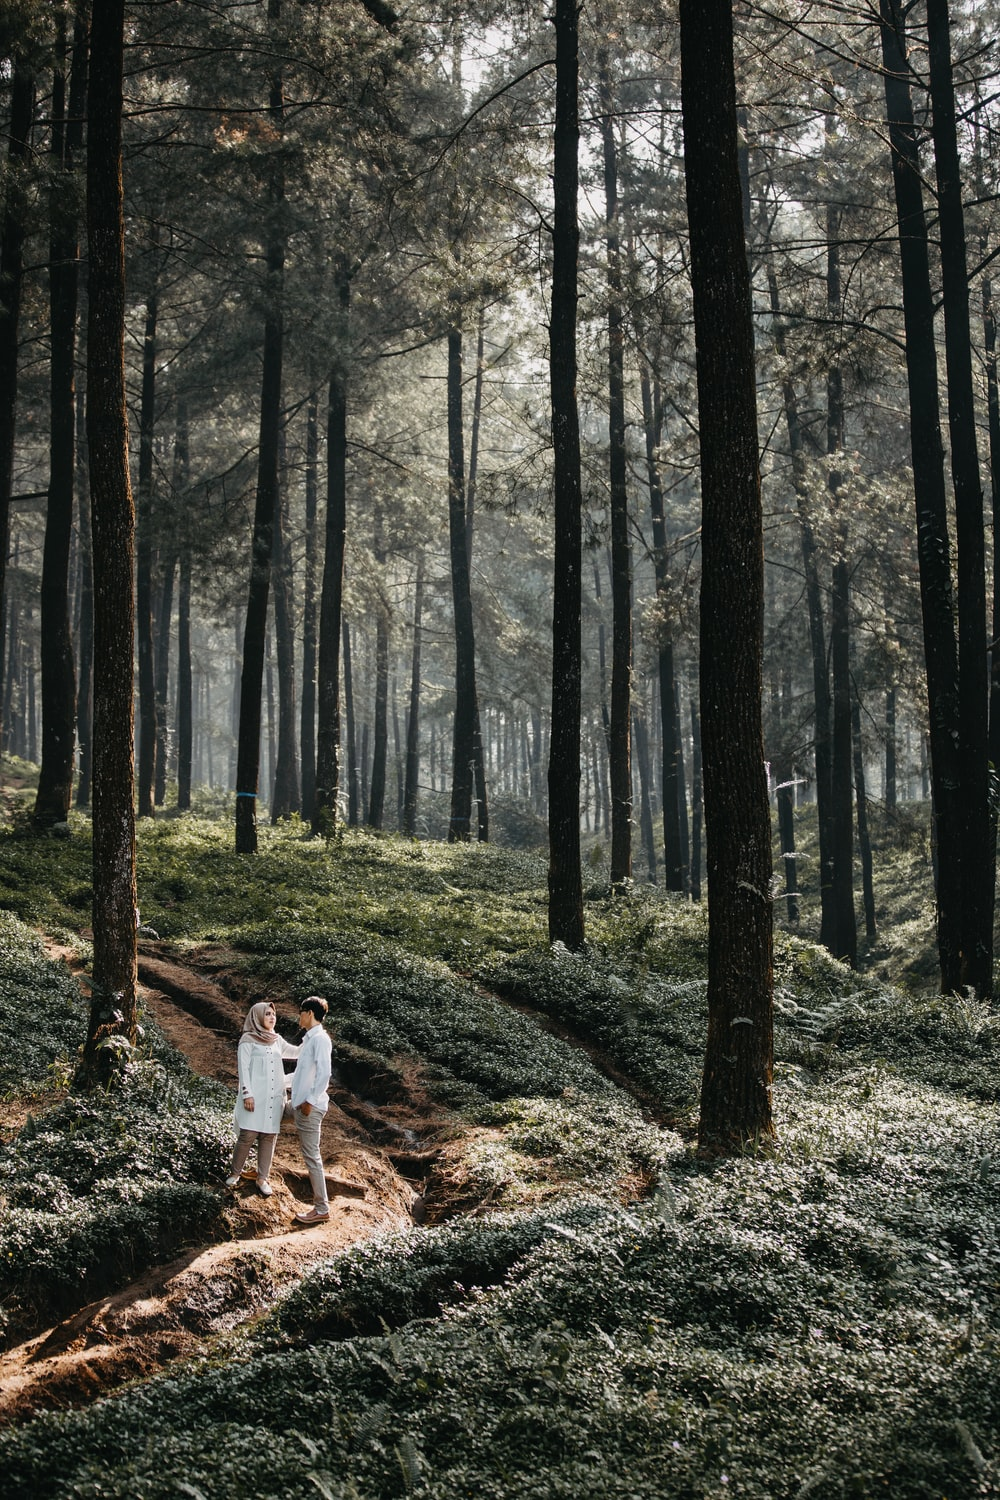 man and woman standing next to each other in a forest with tall trees during daytime